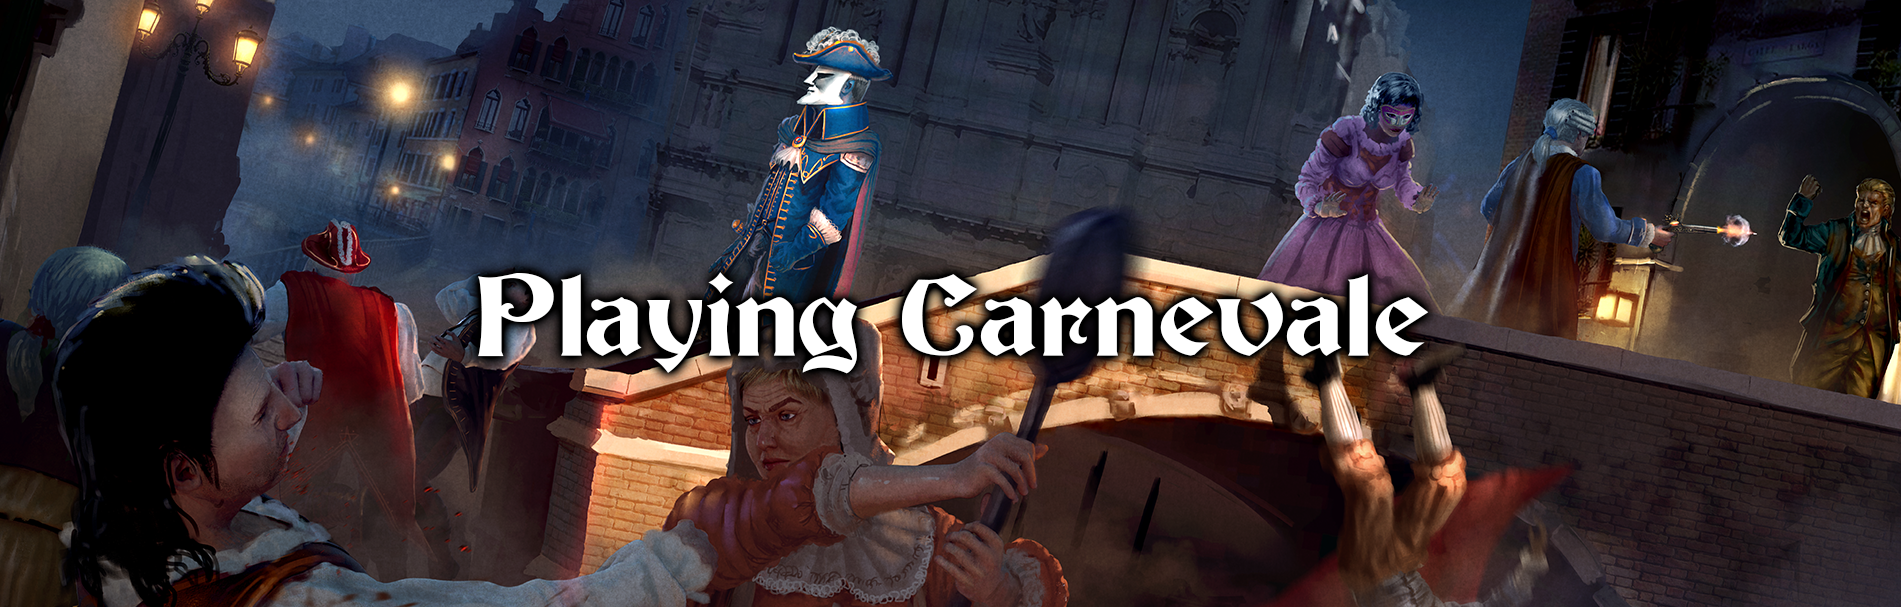 [Image: Playing%20Carnevale%20Picture.png]